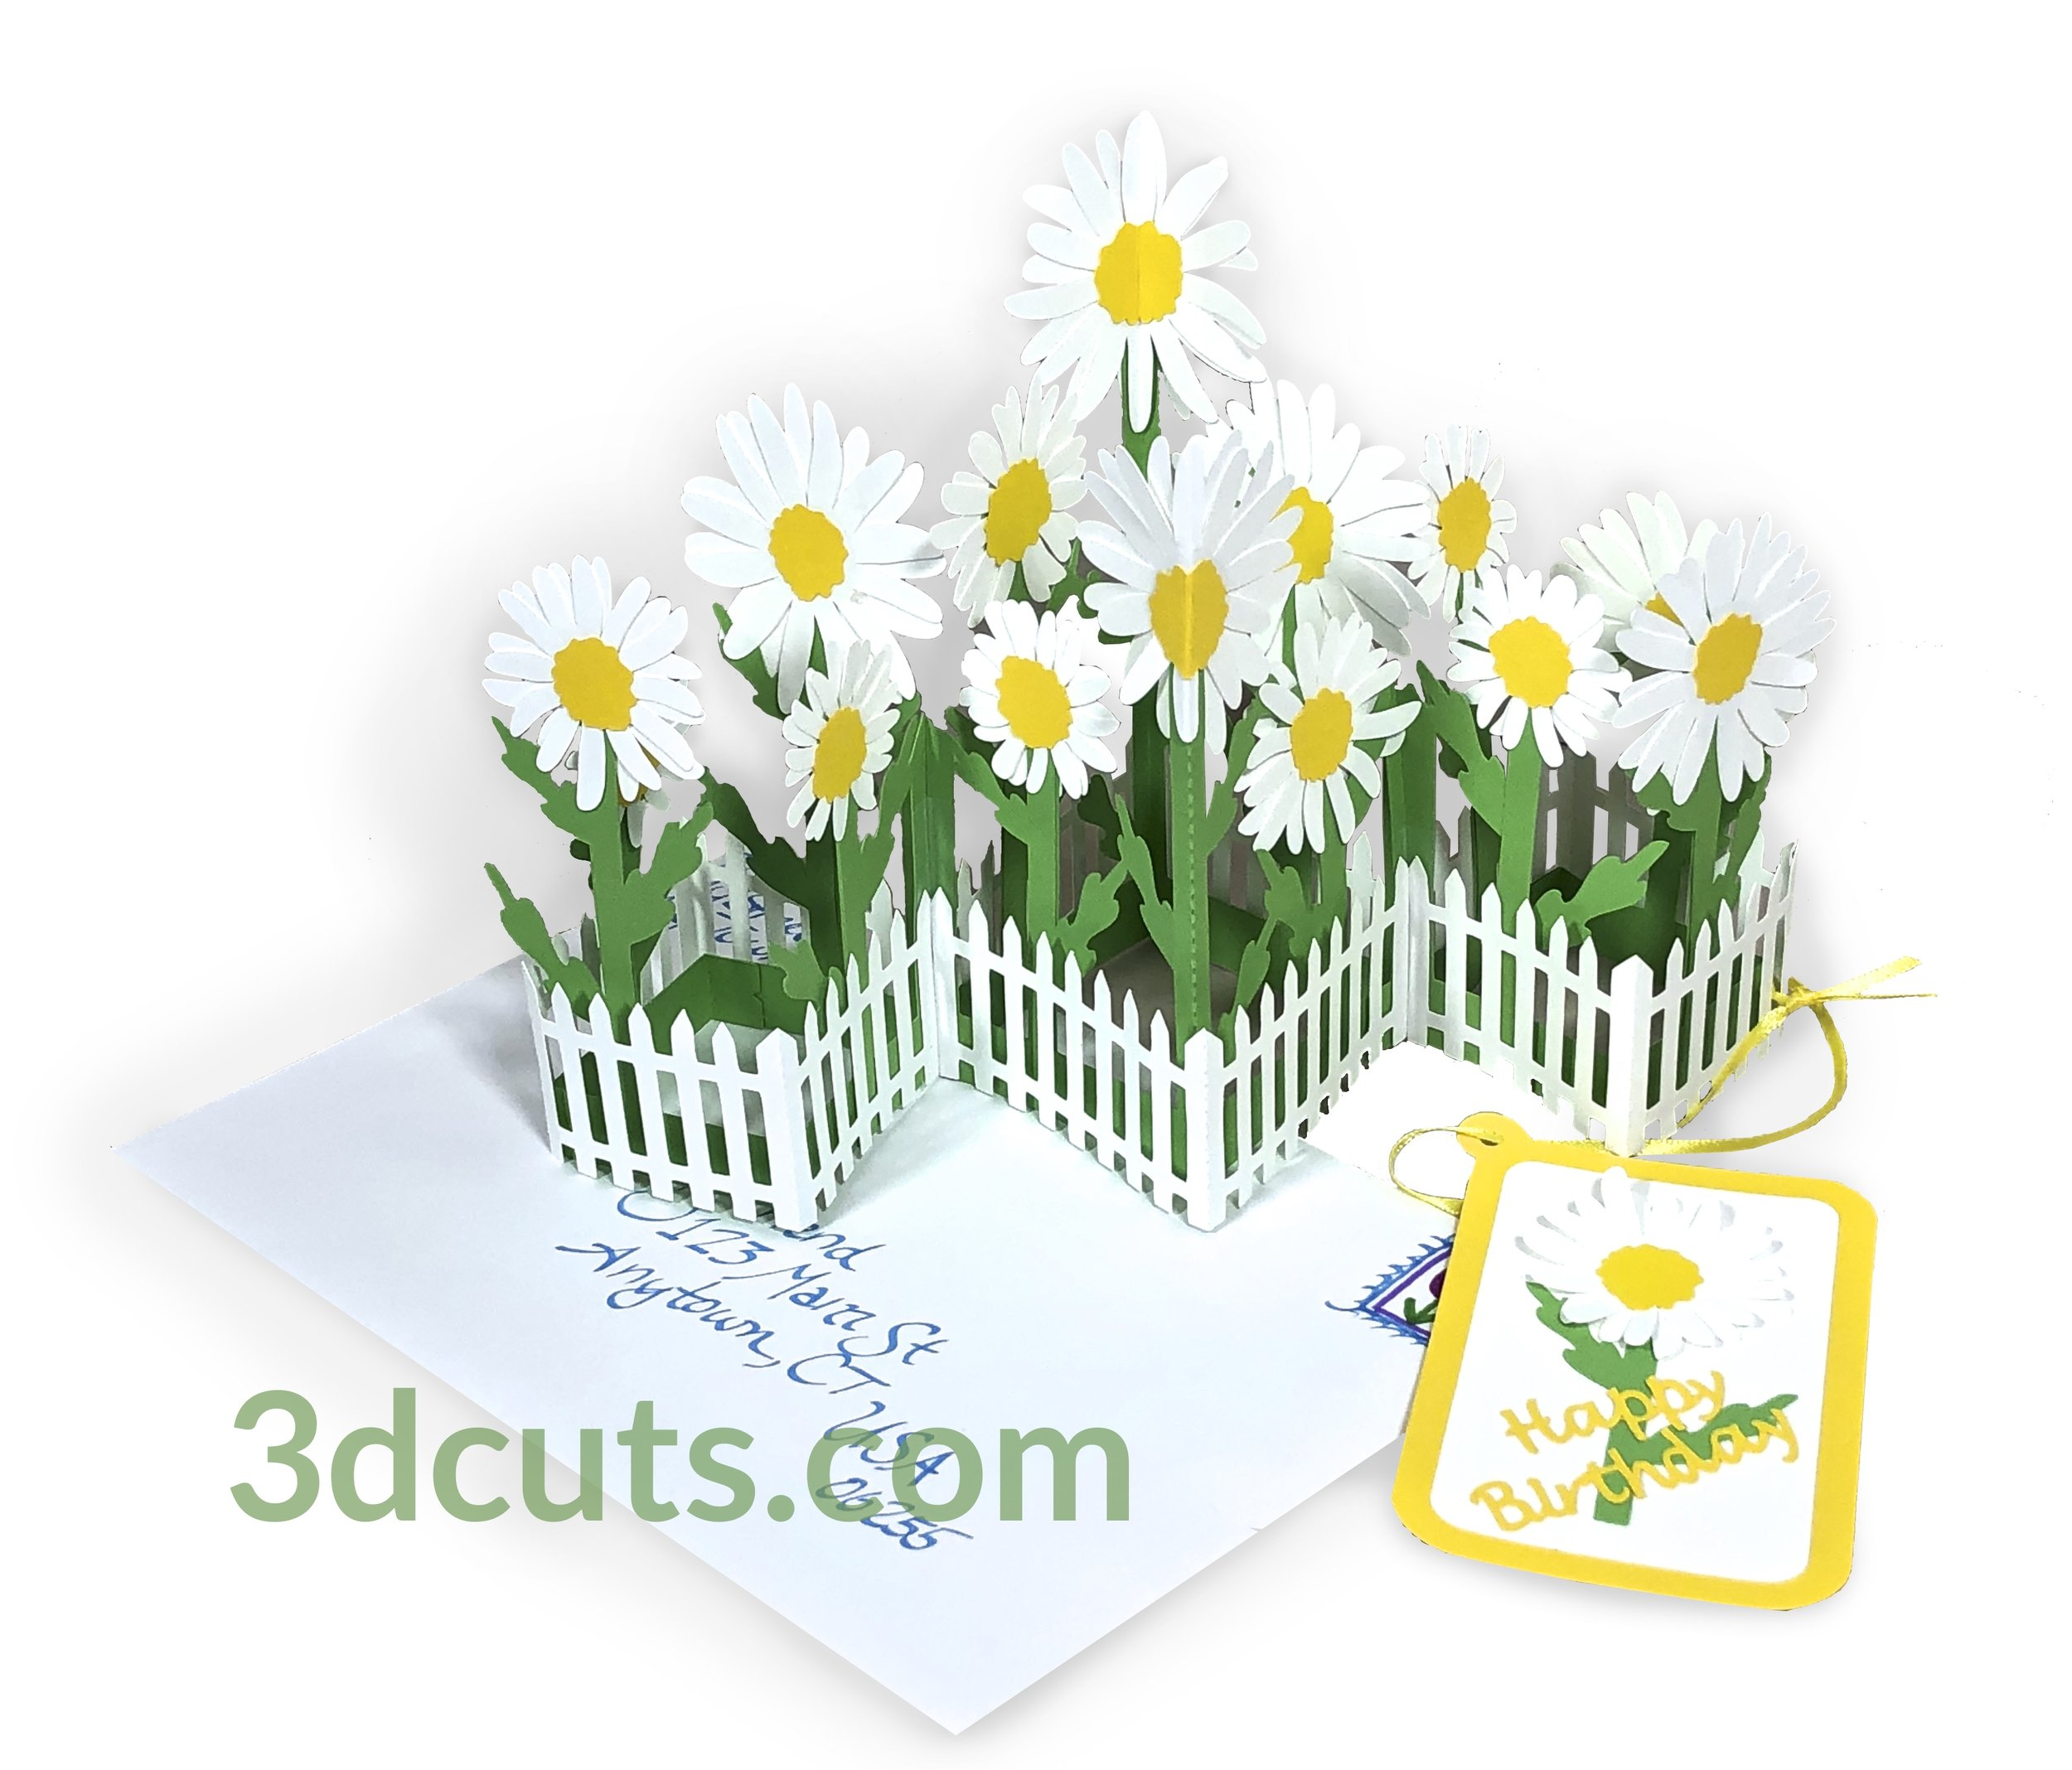 Daisy Zig Zag Card, ©3DCuts.com, Marji Roy, 3D cutting files in .svg, .dxf, and .pdf formats for use with Silhouette, Cricut and other cutting machines, paper crafting files